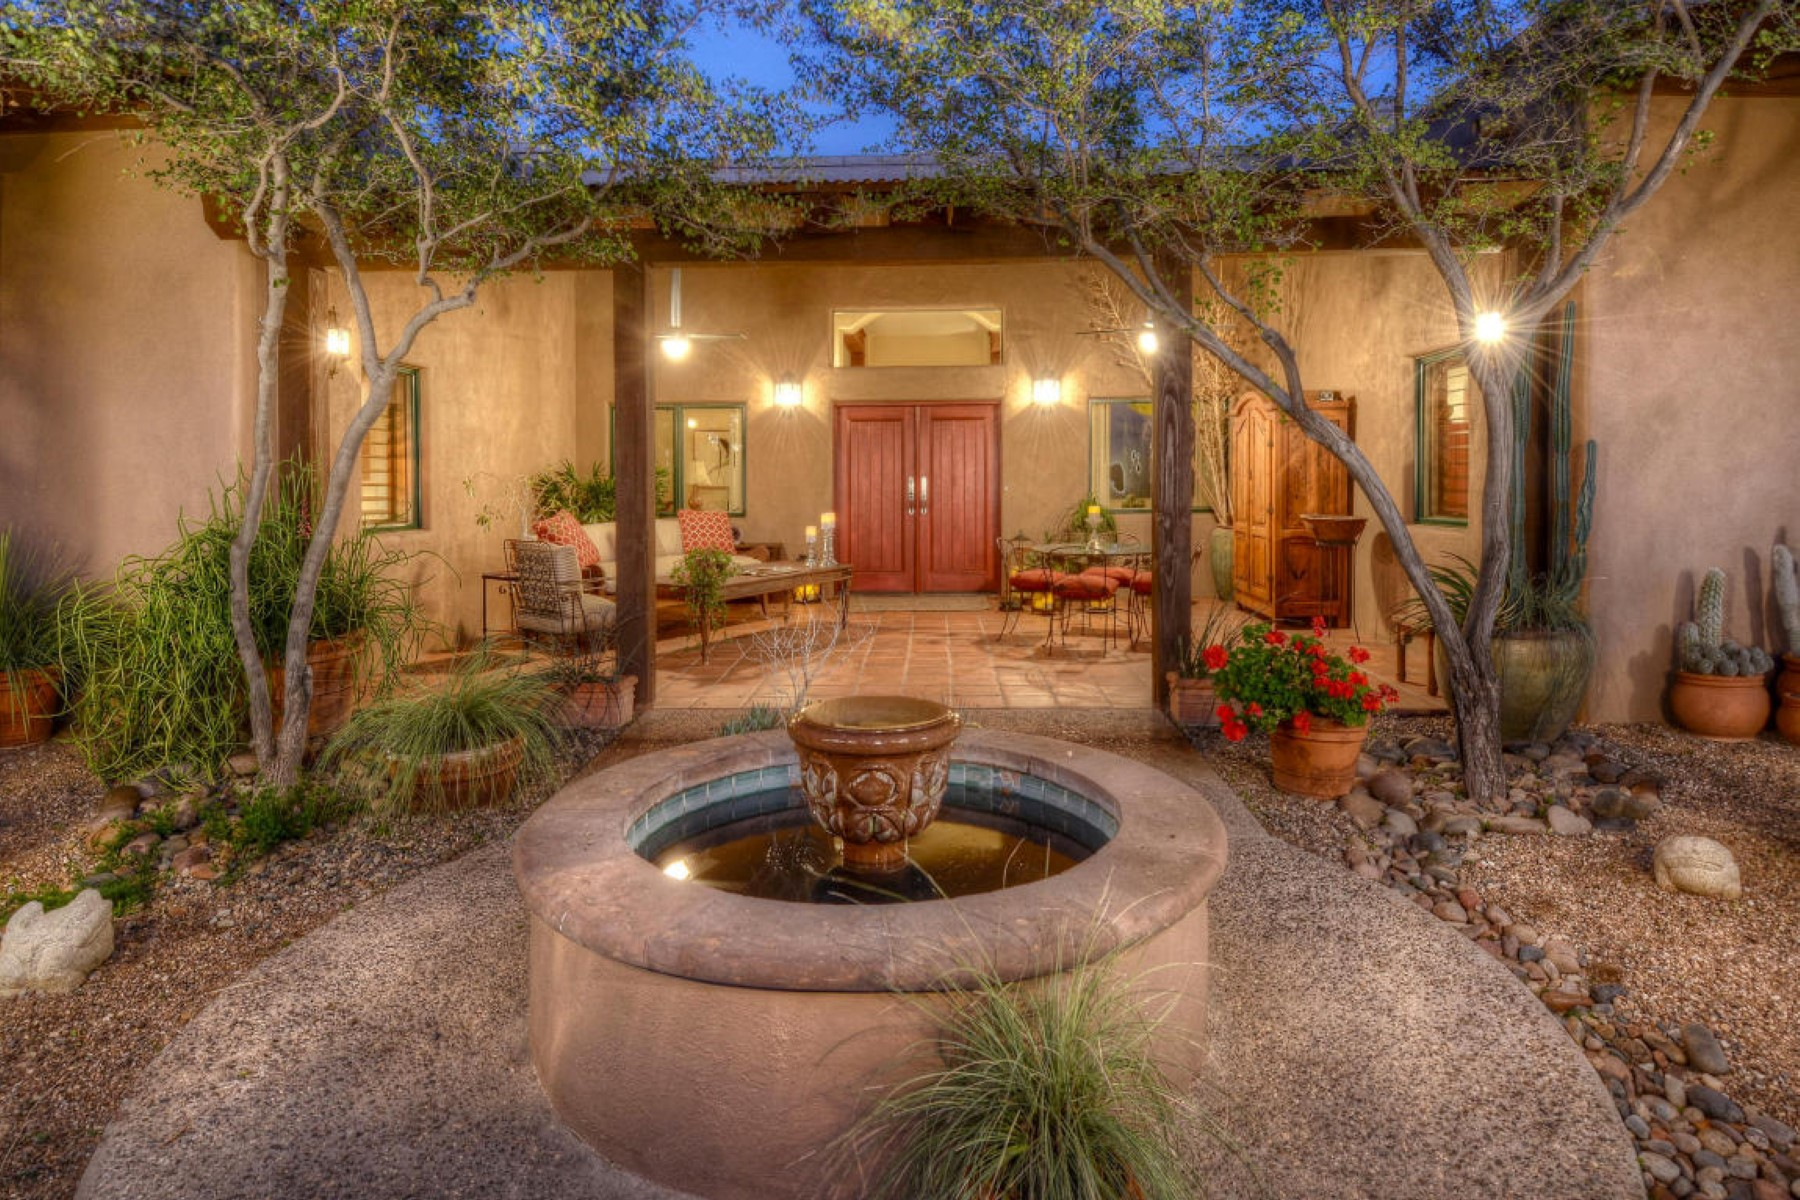 Single Family Home for Sale at Exquisite Hacienda Ranch secluded 10 acre retreat 13450 N Teal Blue Trail Tucson, Arizona, 85742 United States